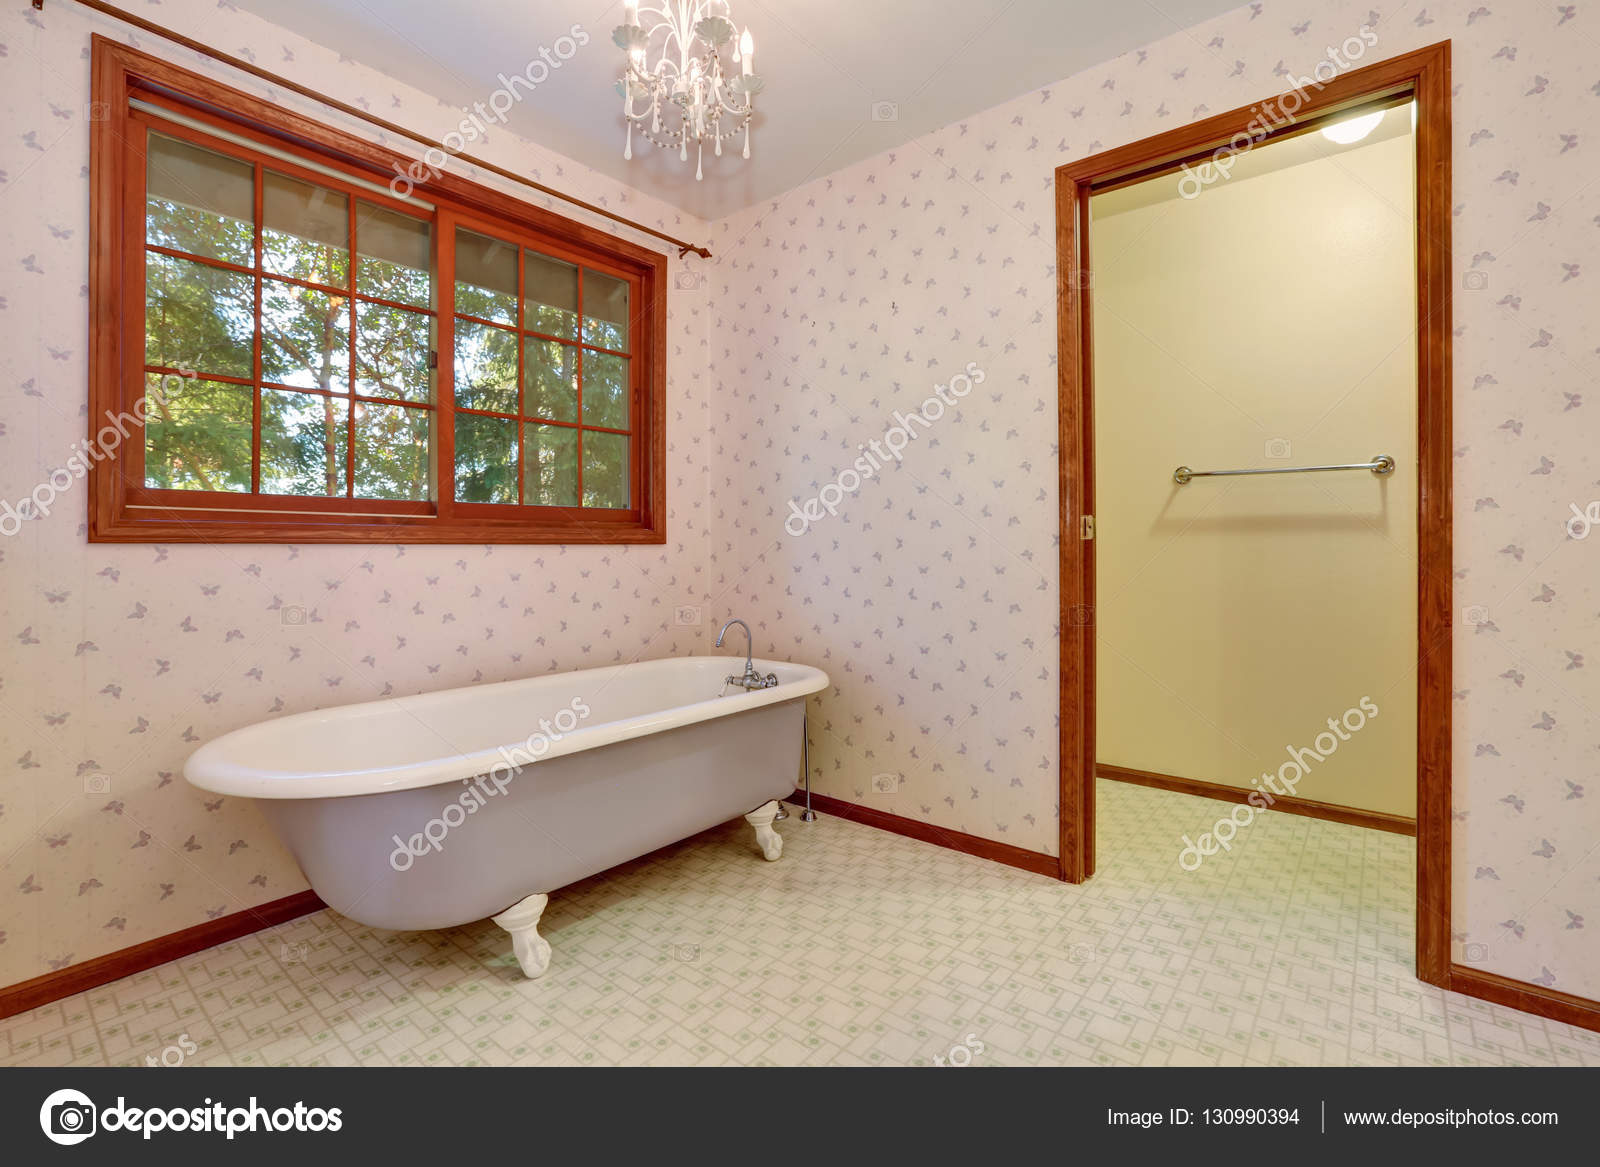 freistehende badewanne in der ecke des retro bad stockfoto iriana88w 130990394. Black Bedroom Furniture Sets. Home Design Ideas